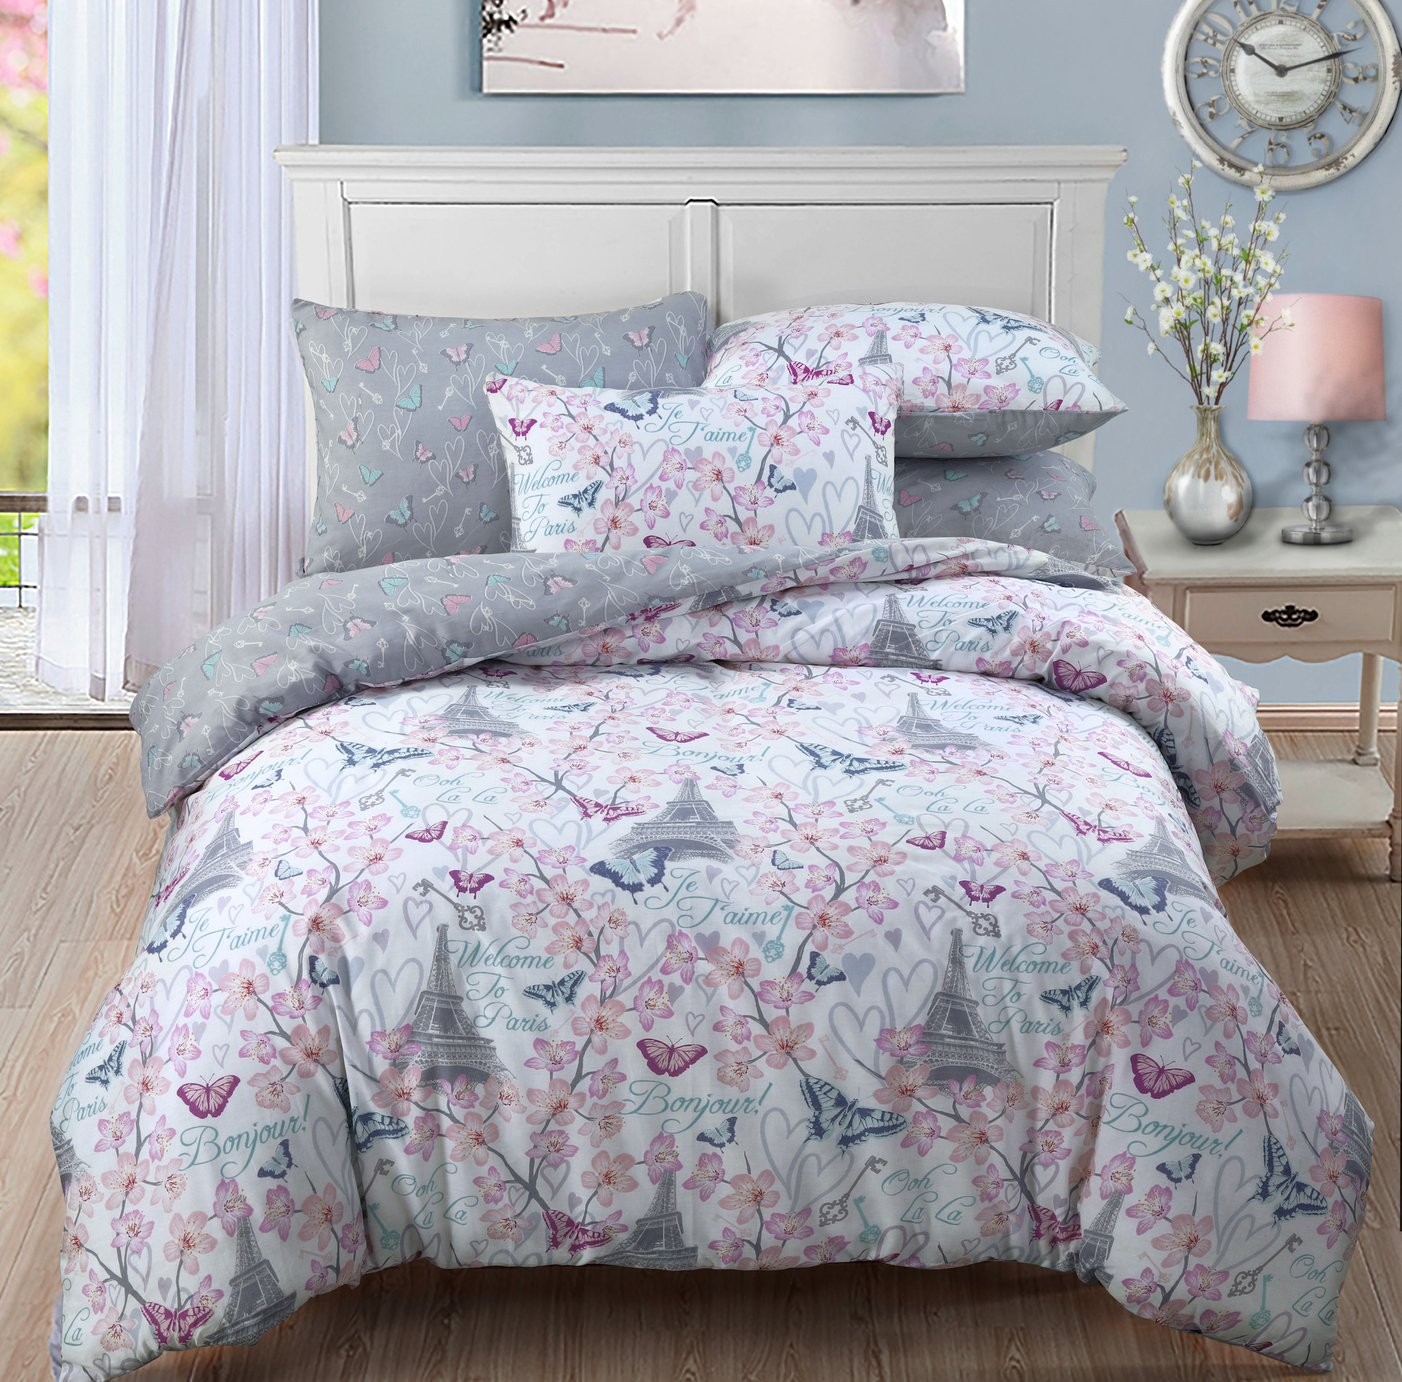 Argos Home Paris Blossom Bedding Set - Double